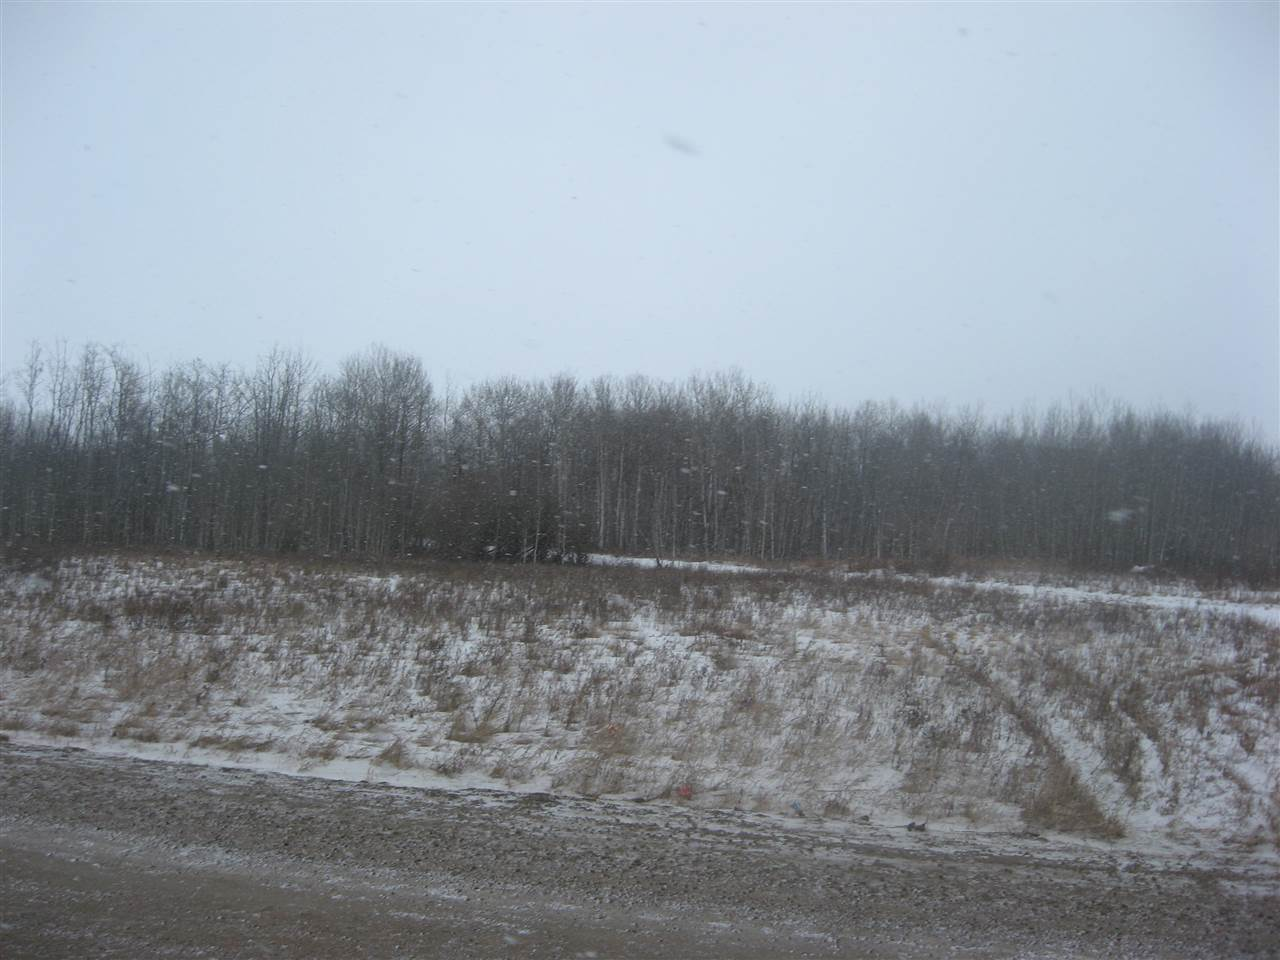 Main Photo: 4440 54 Avenue: Redwater Land (Commercial) for sale : MLS® # E4049079